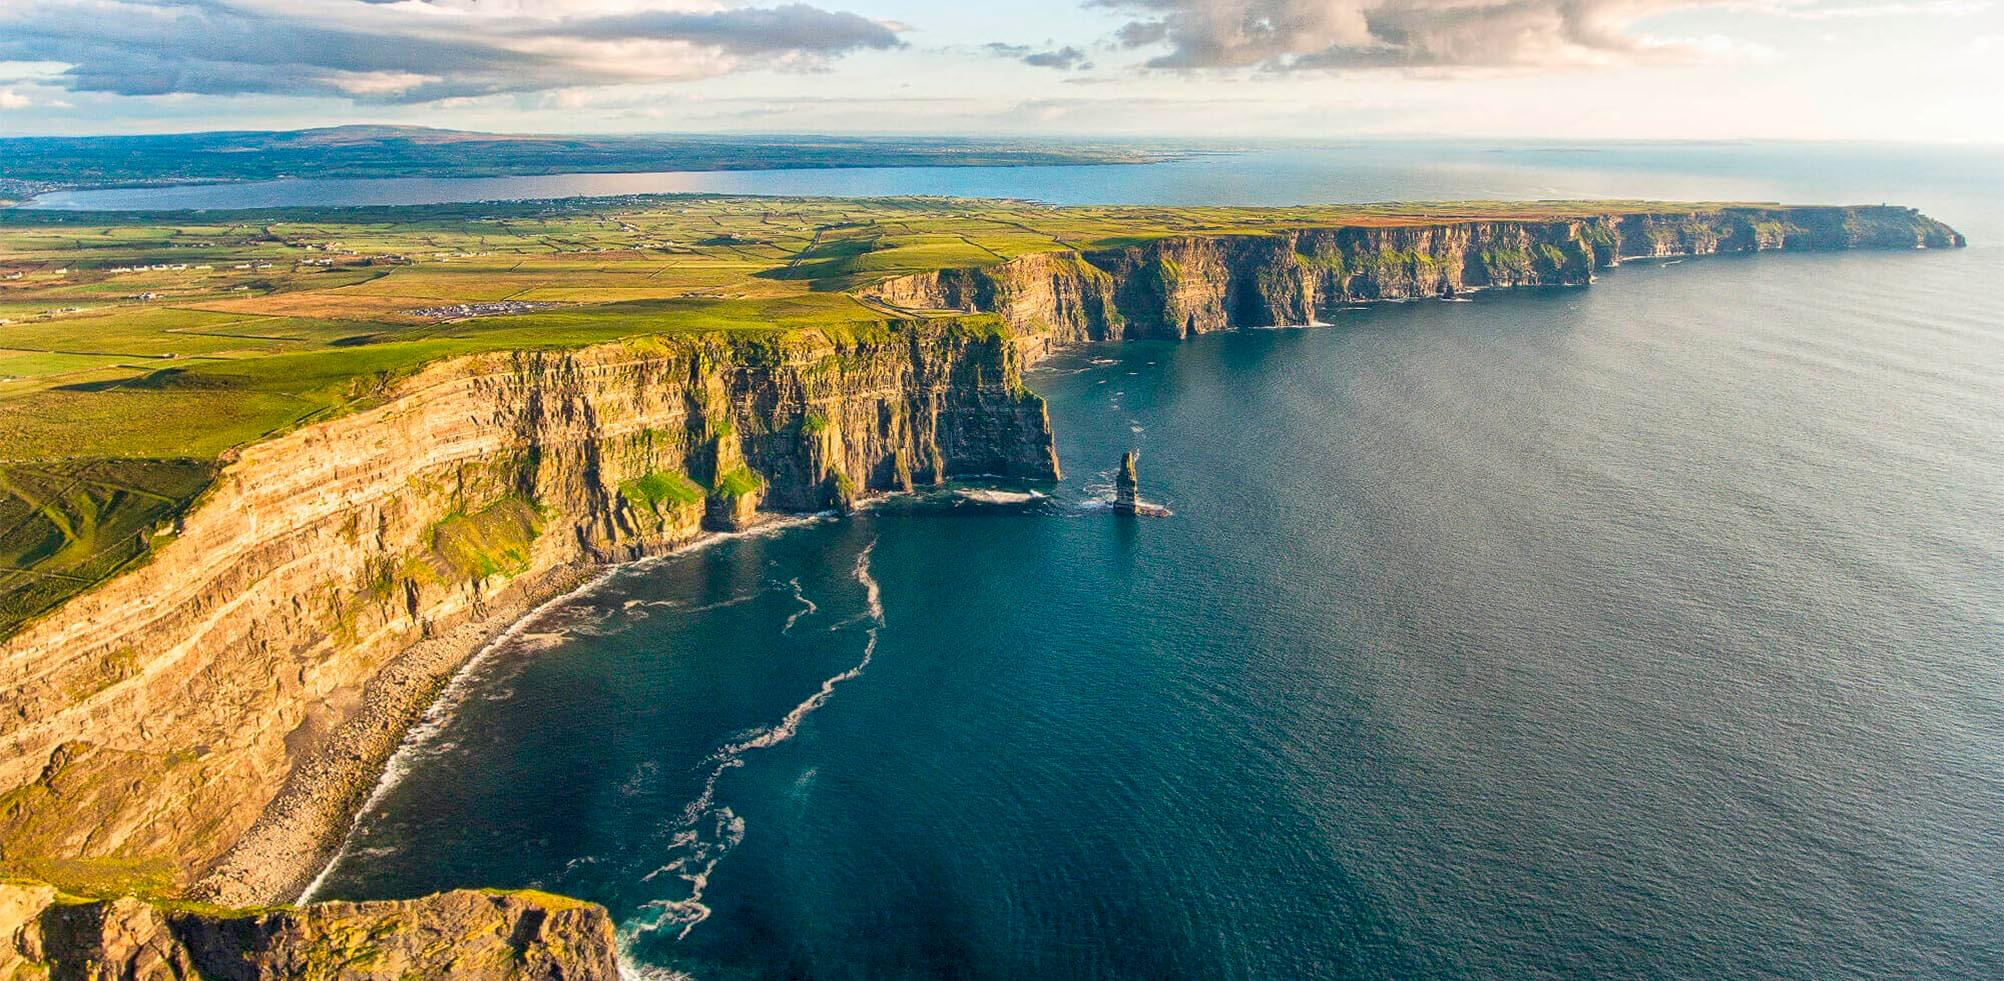 Cliffs of Moher Tour from Dublin